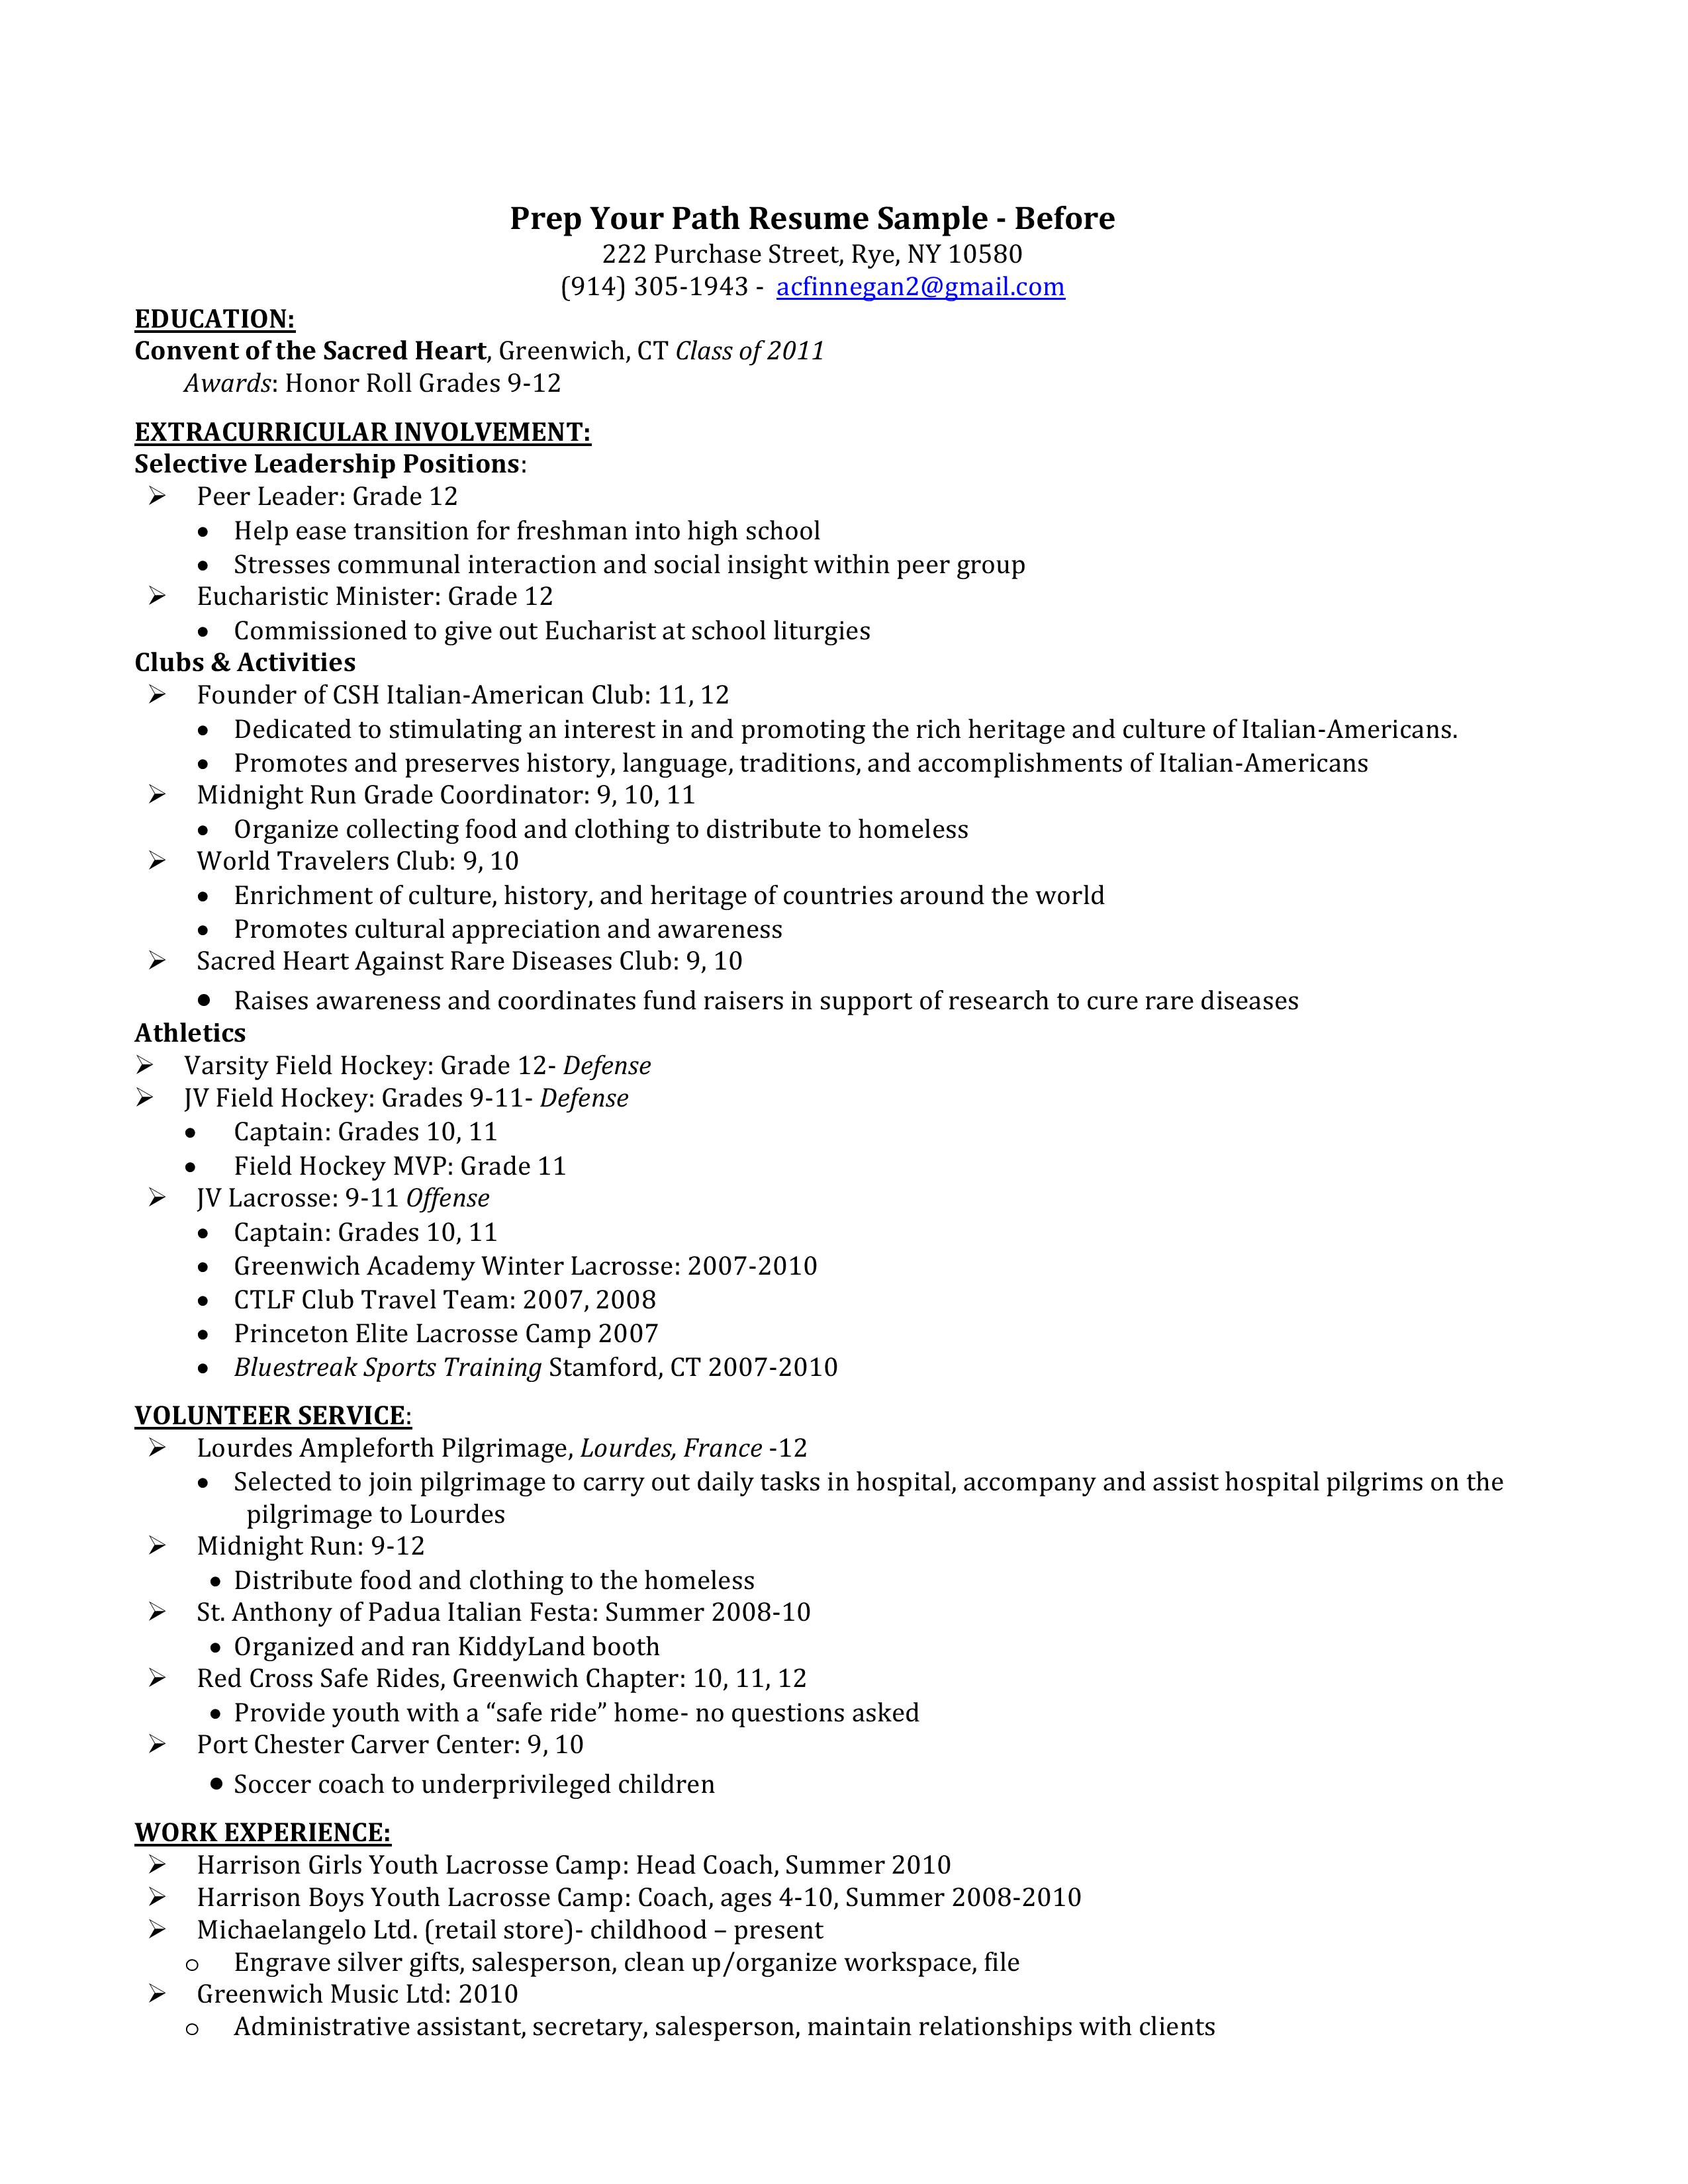 Resume - Before